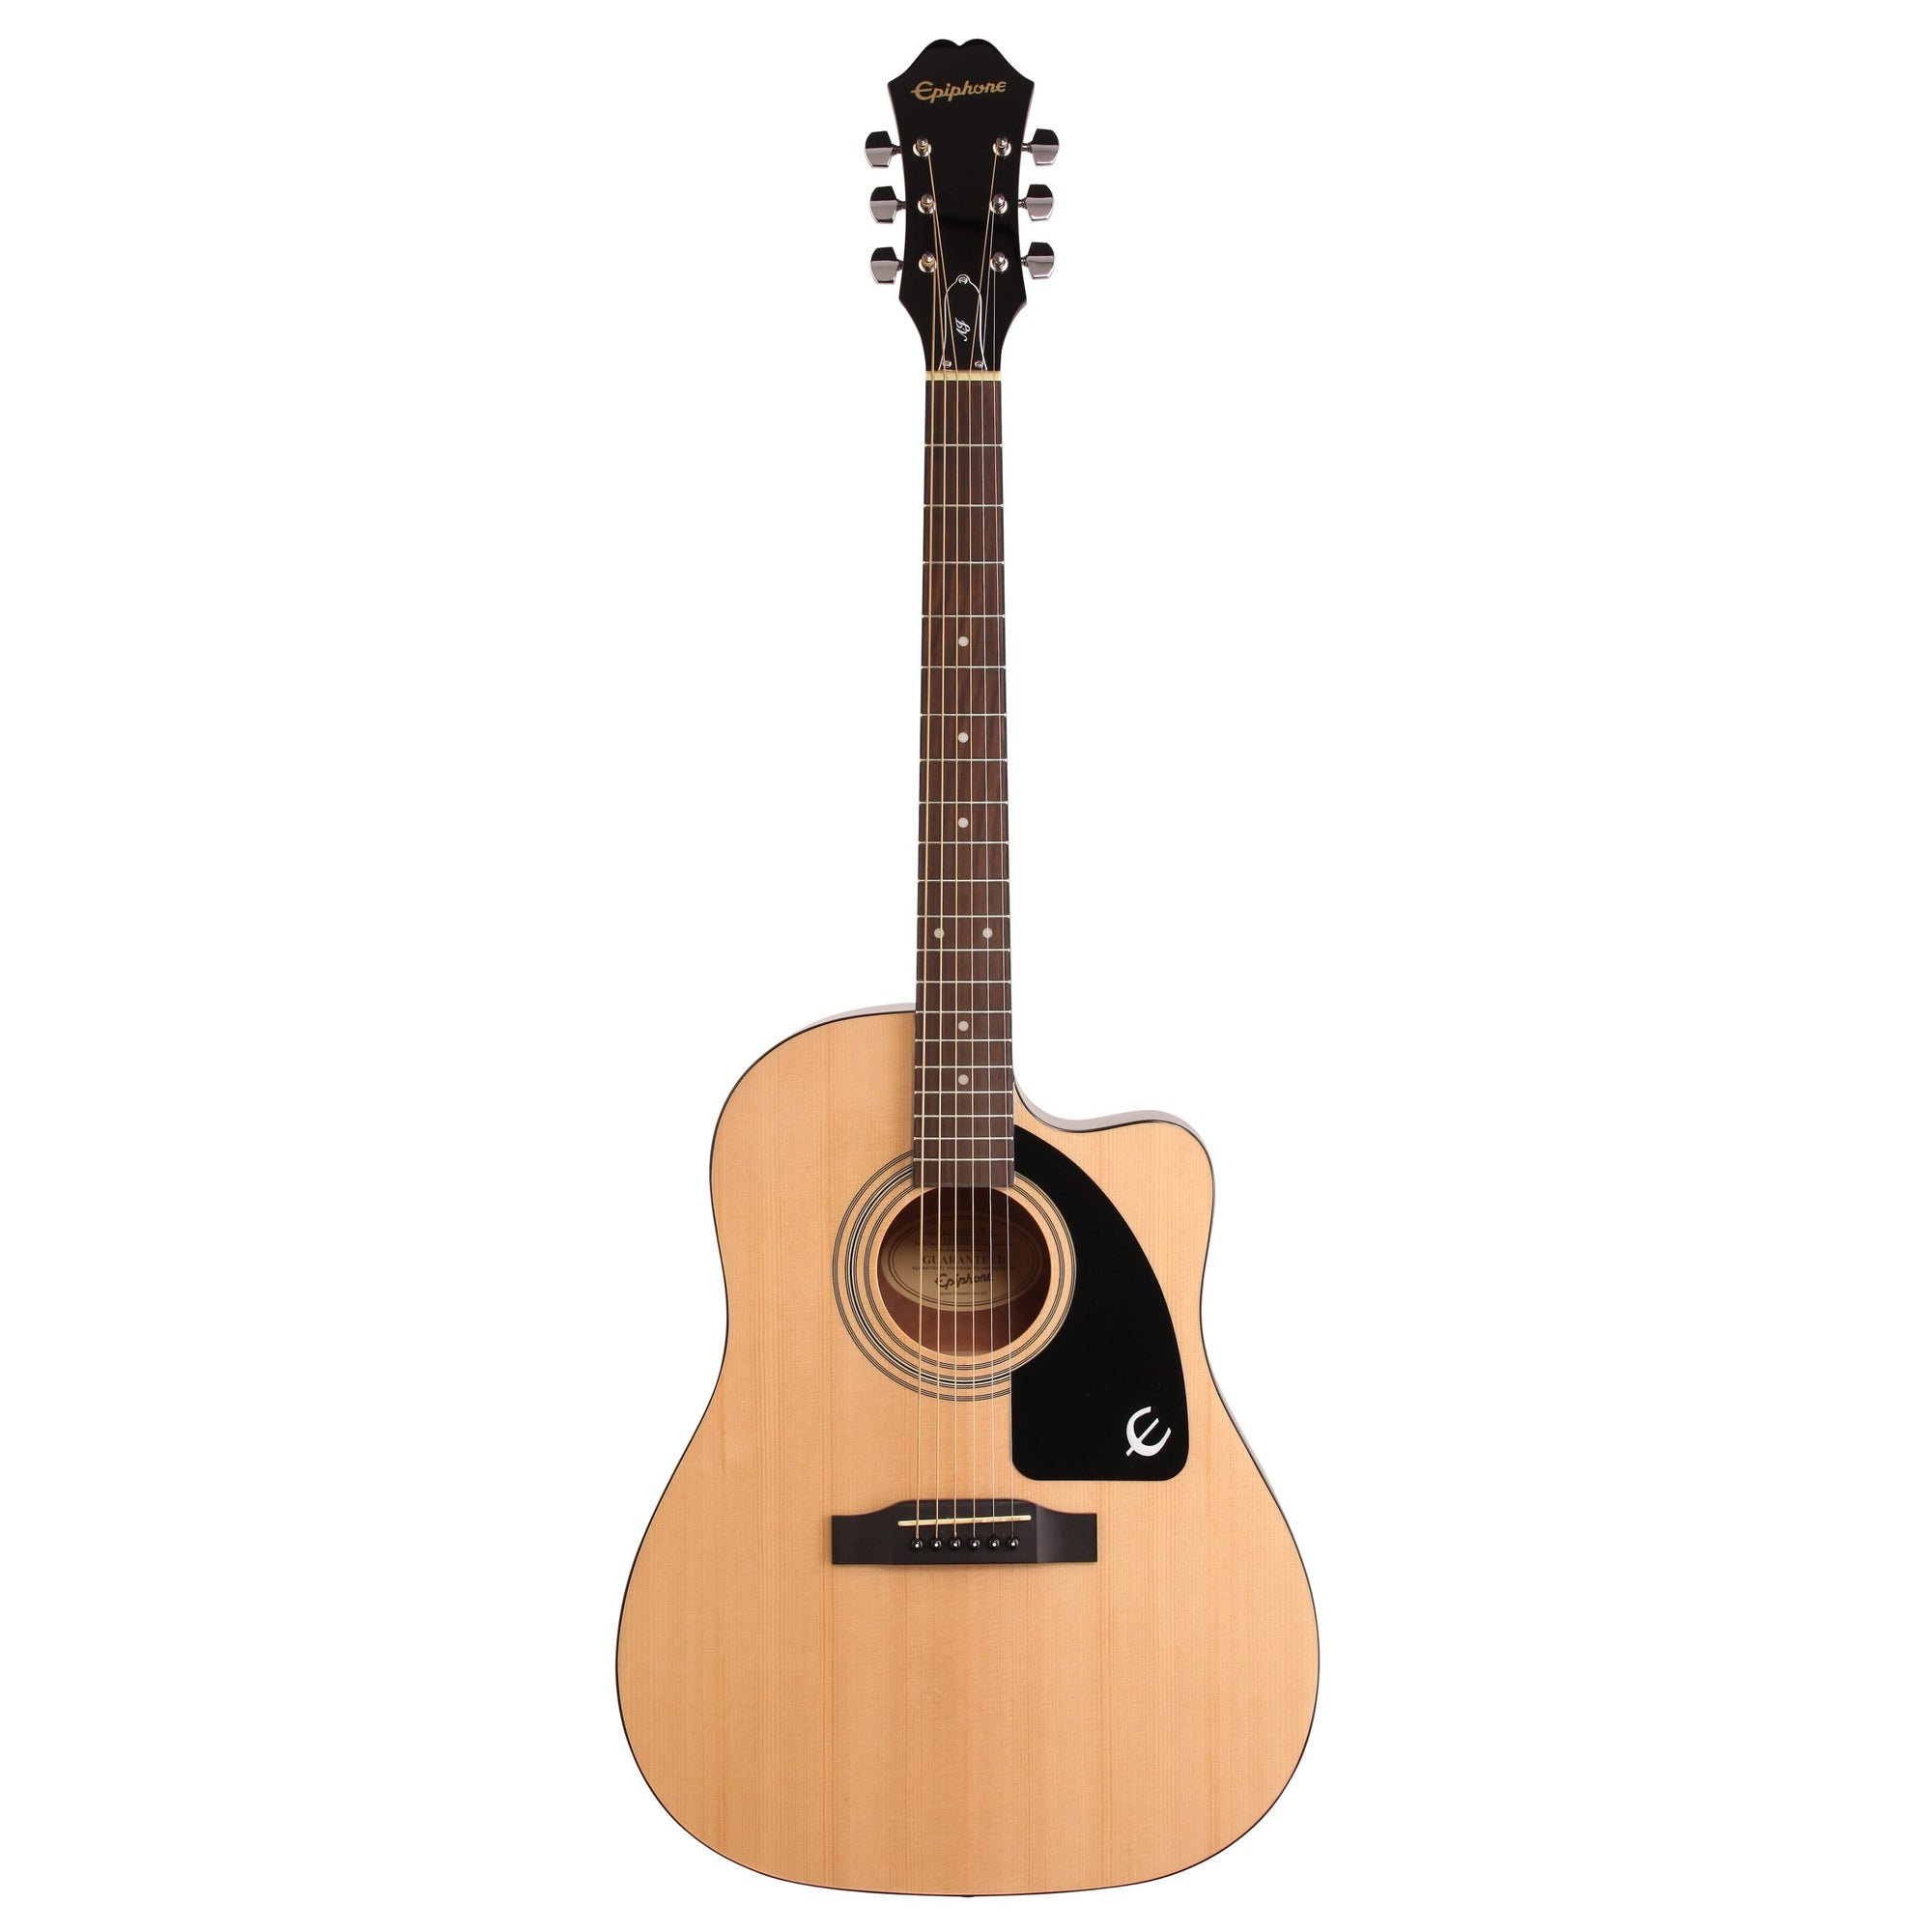 Epiphone AJ-100CE Jumbo Cutaway Acoustic-Electric Guitar, Natural